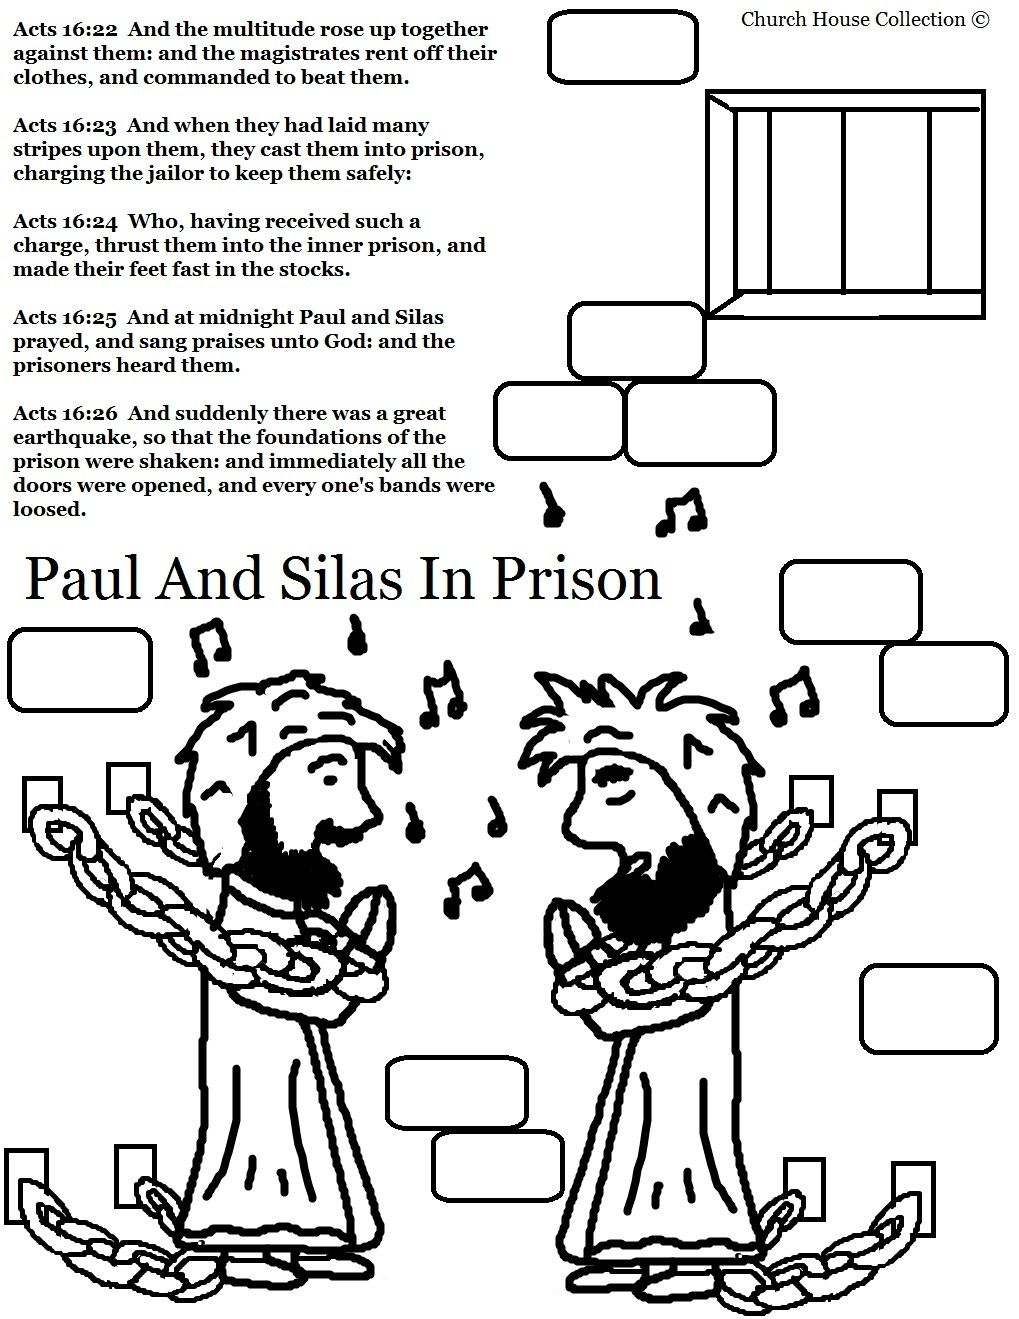 Paul and Silas Coloring Page.jpg 1,019×1,319 pixels | Bible Study ...